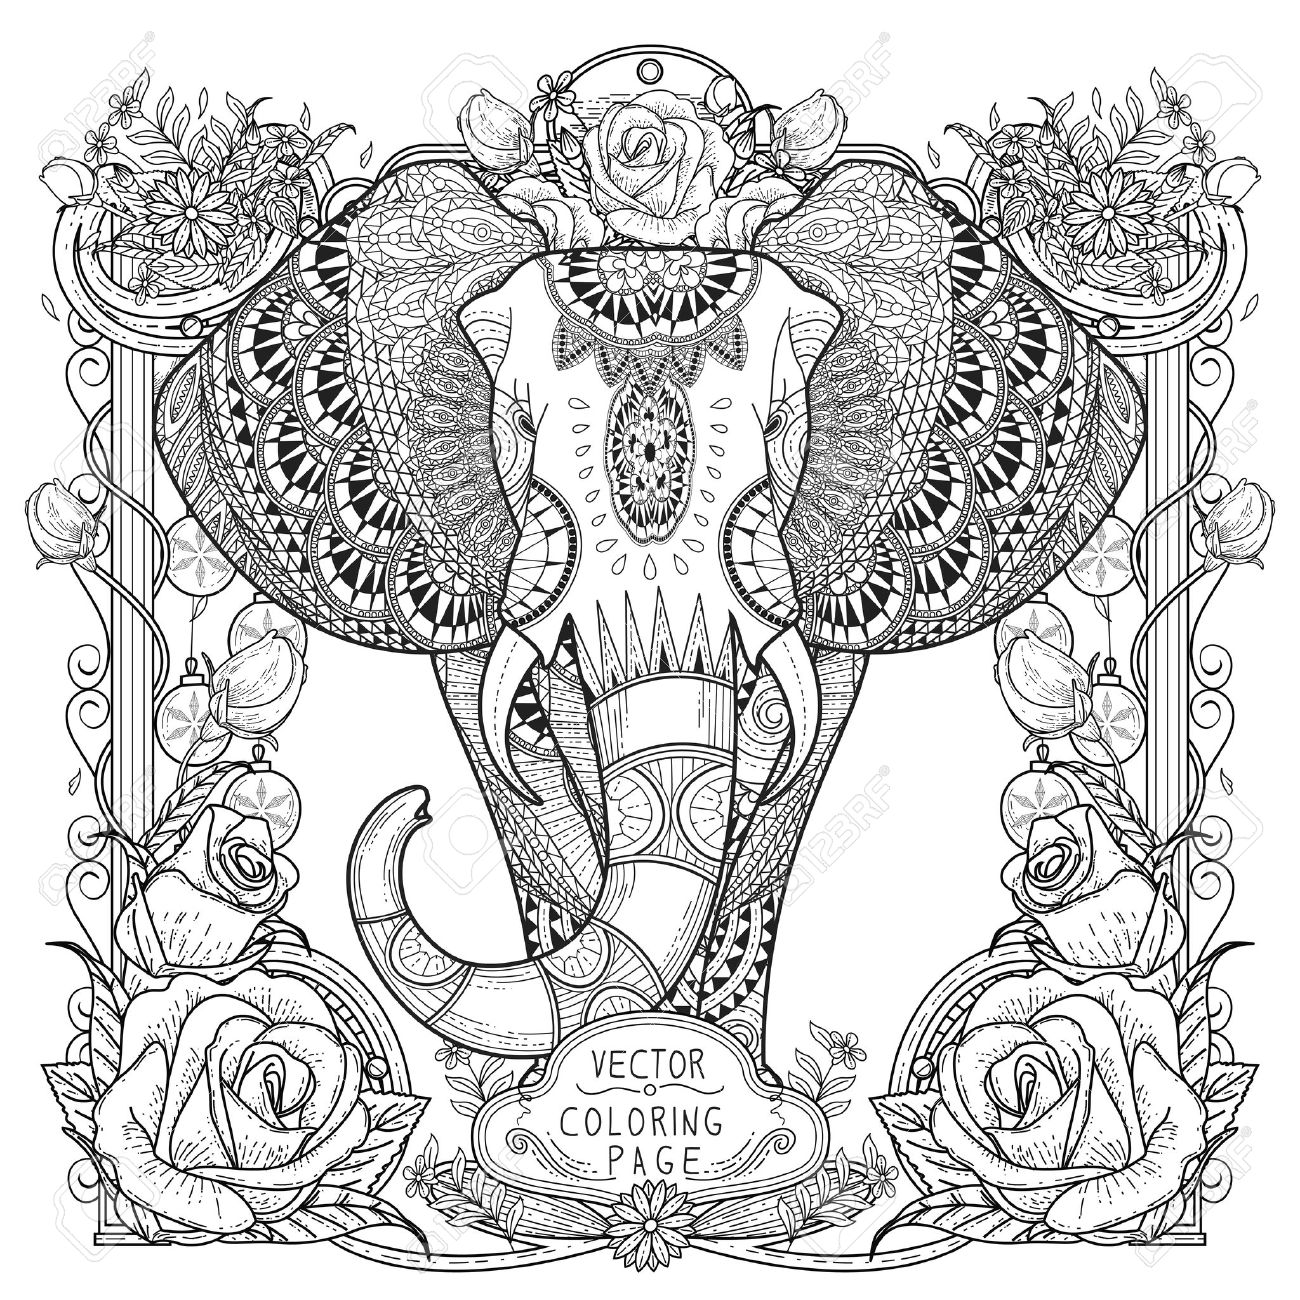 Splendid Elephant Coloring Page In Exquisite Style Royalty Free ...